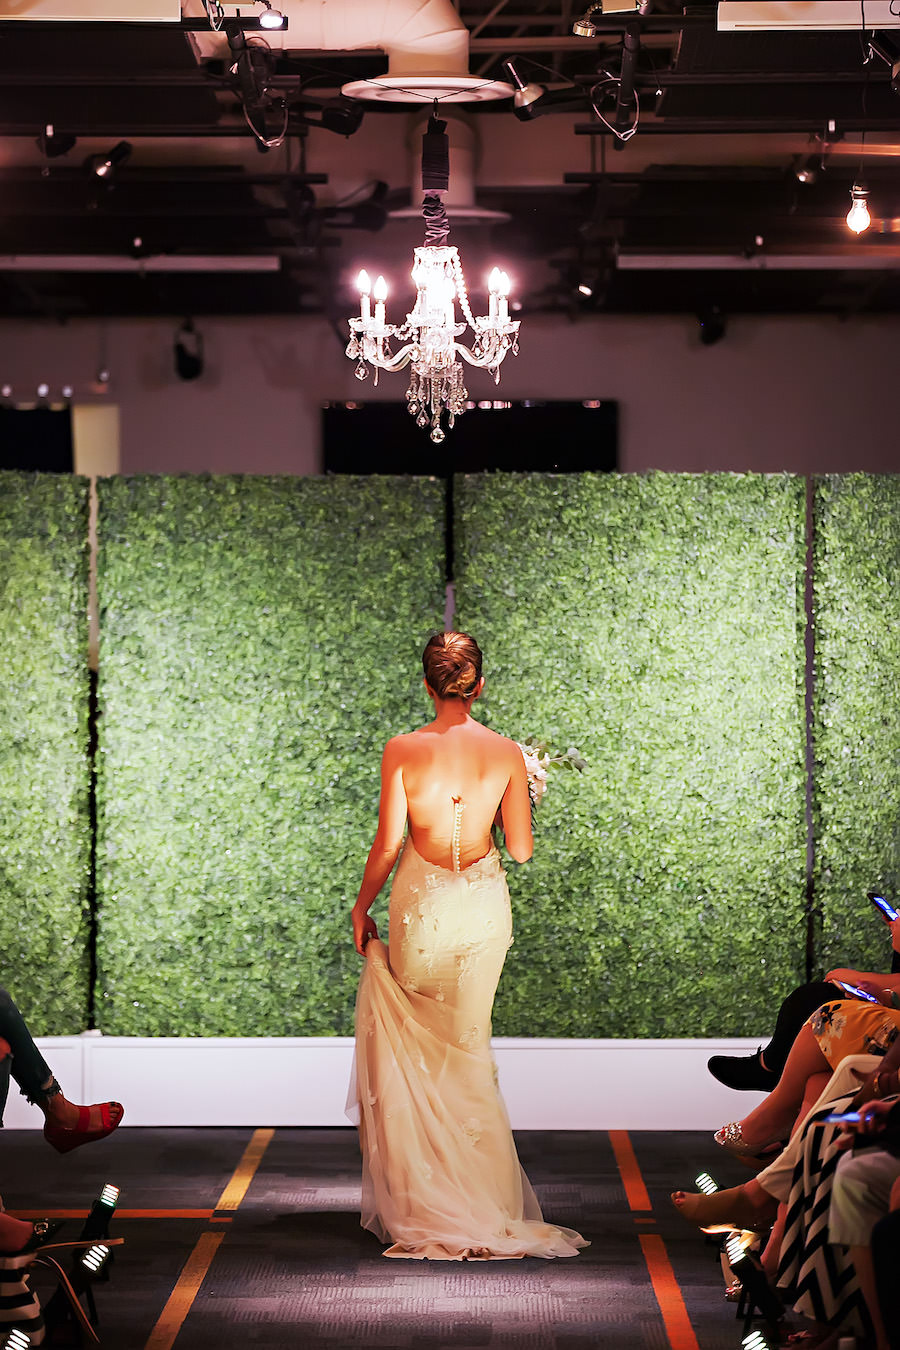 Open Back Wedding Dress | Marry Me Tampa Bay Wedding Week Bridal Fashion Runway Show | Tampa Bay Wedding Photographer Limelight Photography | Wedding Planner Glitz Events | Hair and Makeup Artist Michele Renee The Studio | Couture Wedding Dress Shop Isabel O'Neil Bridal